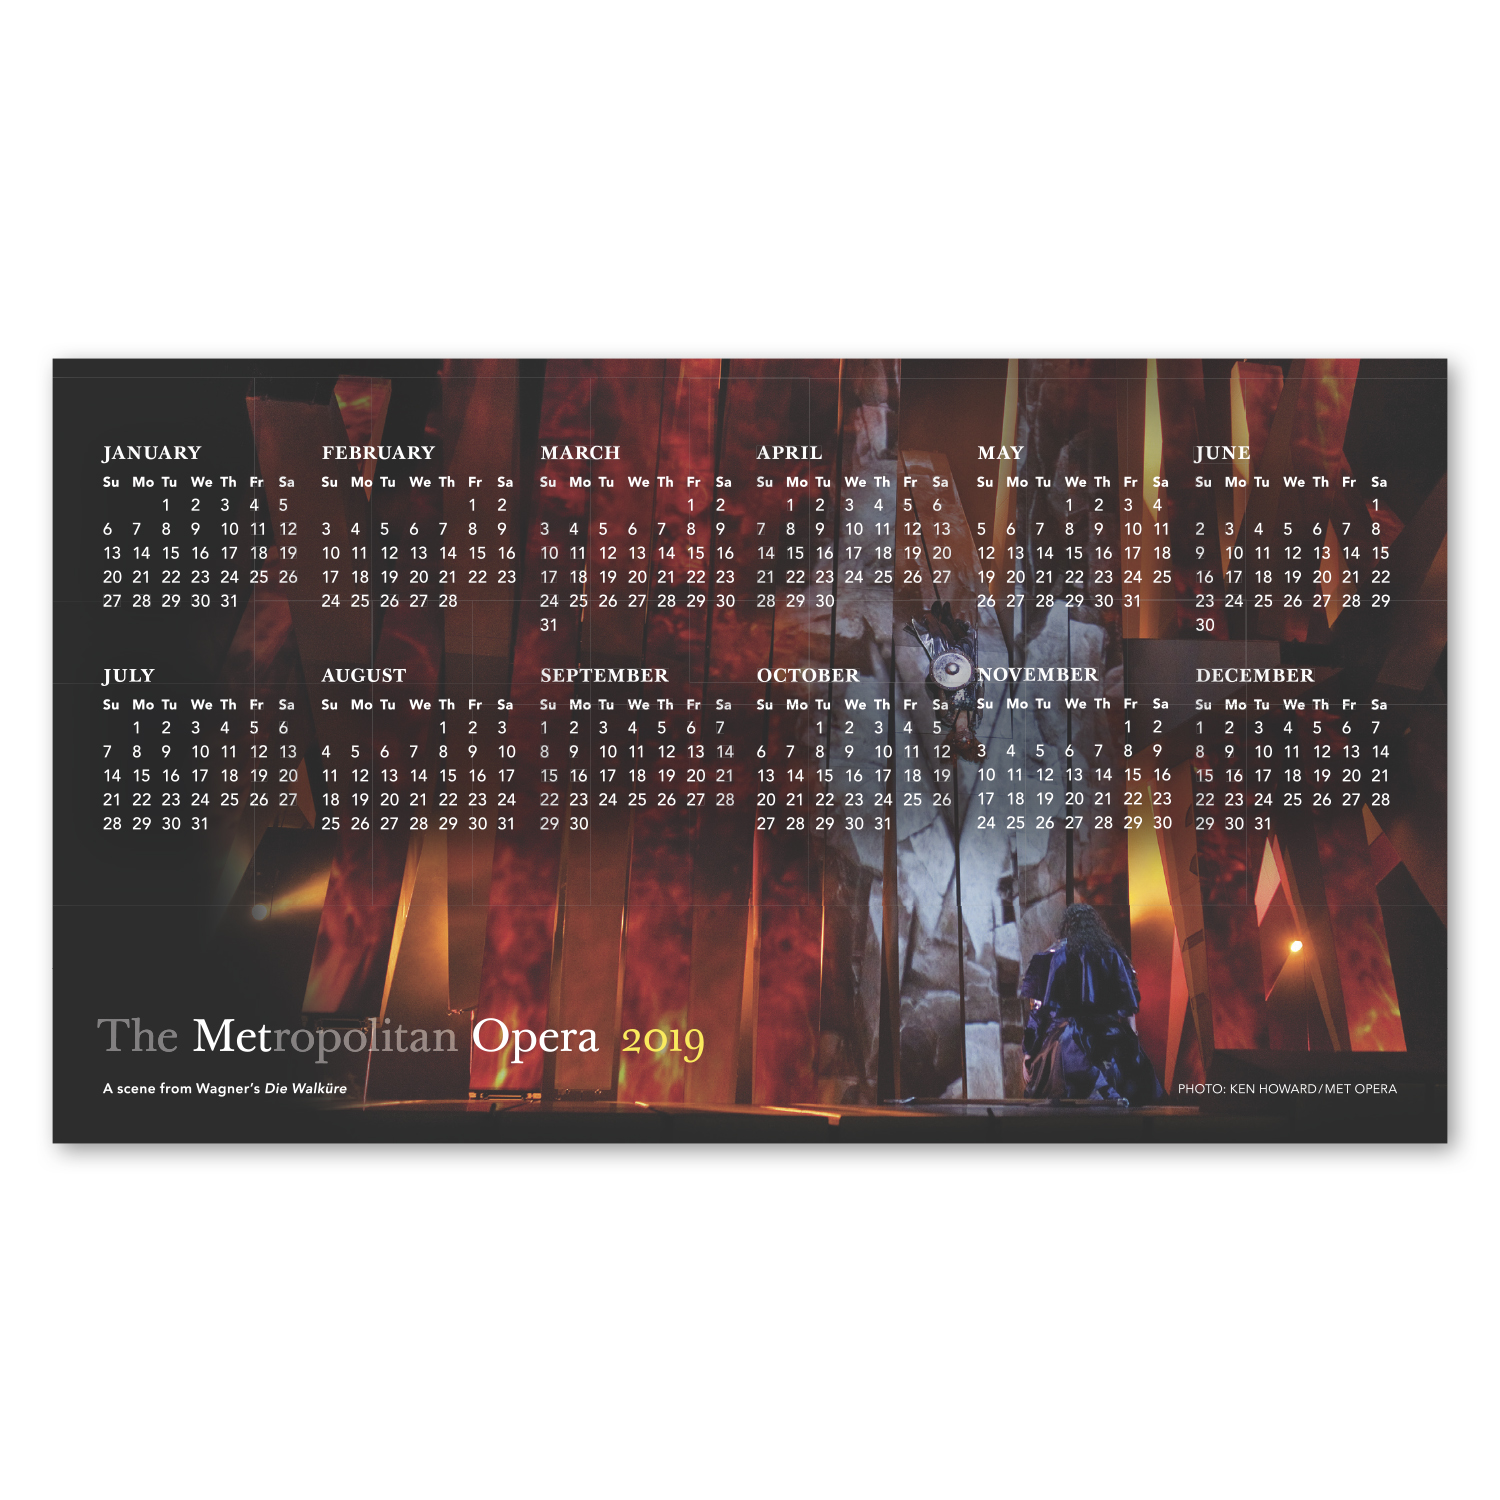 """• MC05 Calendar Magnet, 3.9063"""" x 6.9375"""", .020 thickness  • The Metropolitan Opera has repeated this 125,000 piece calendar magnet order every year since 2012."""